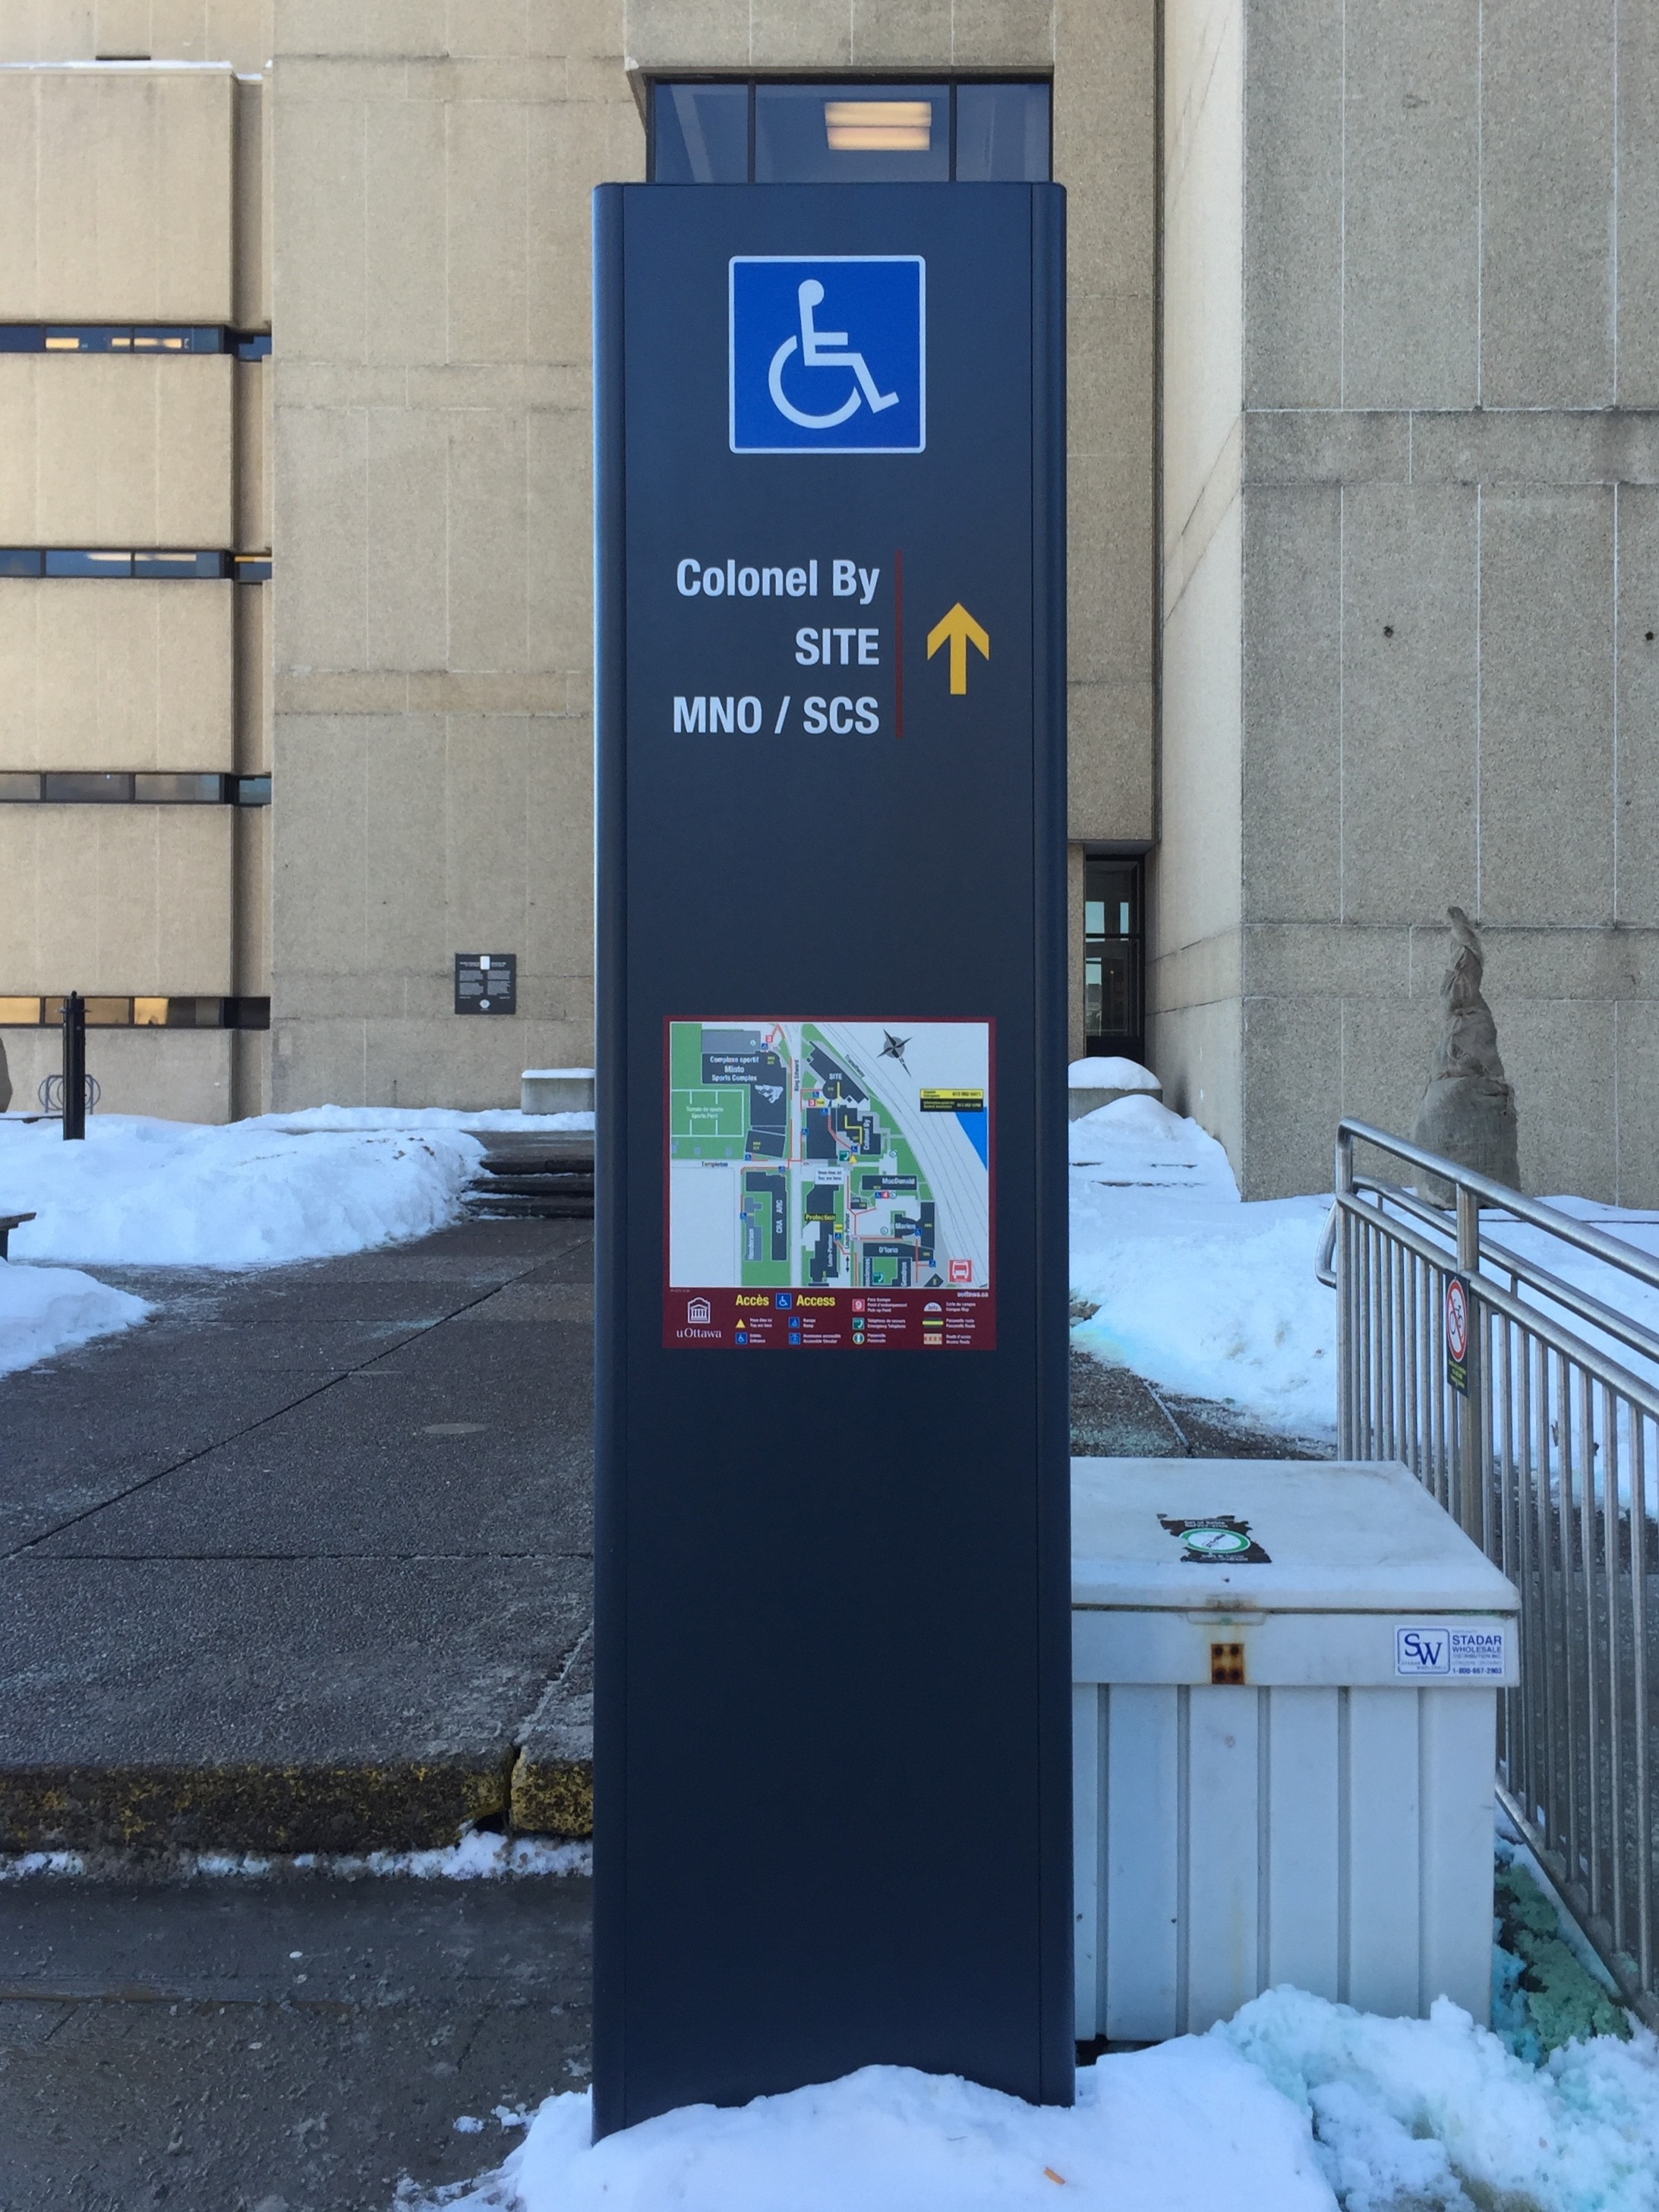 image of acessibility sign